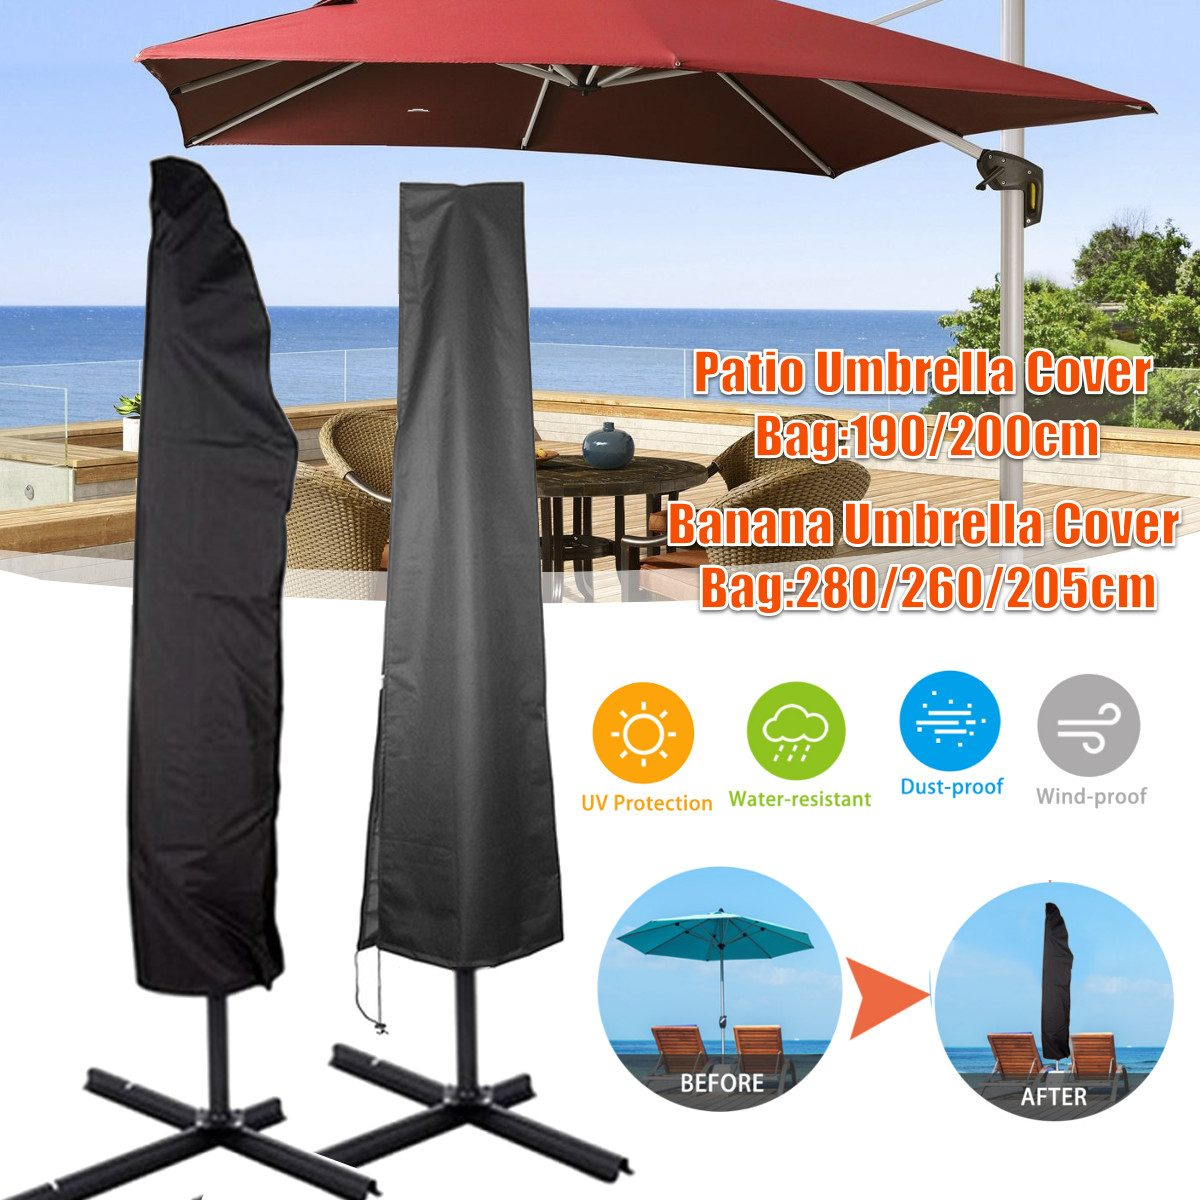 Umbrella Covers Heavy Duty Waterproof Outdoor Patio Parasol Covers with Zipper for Straight Umbrella